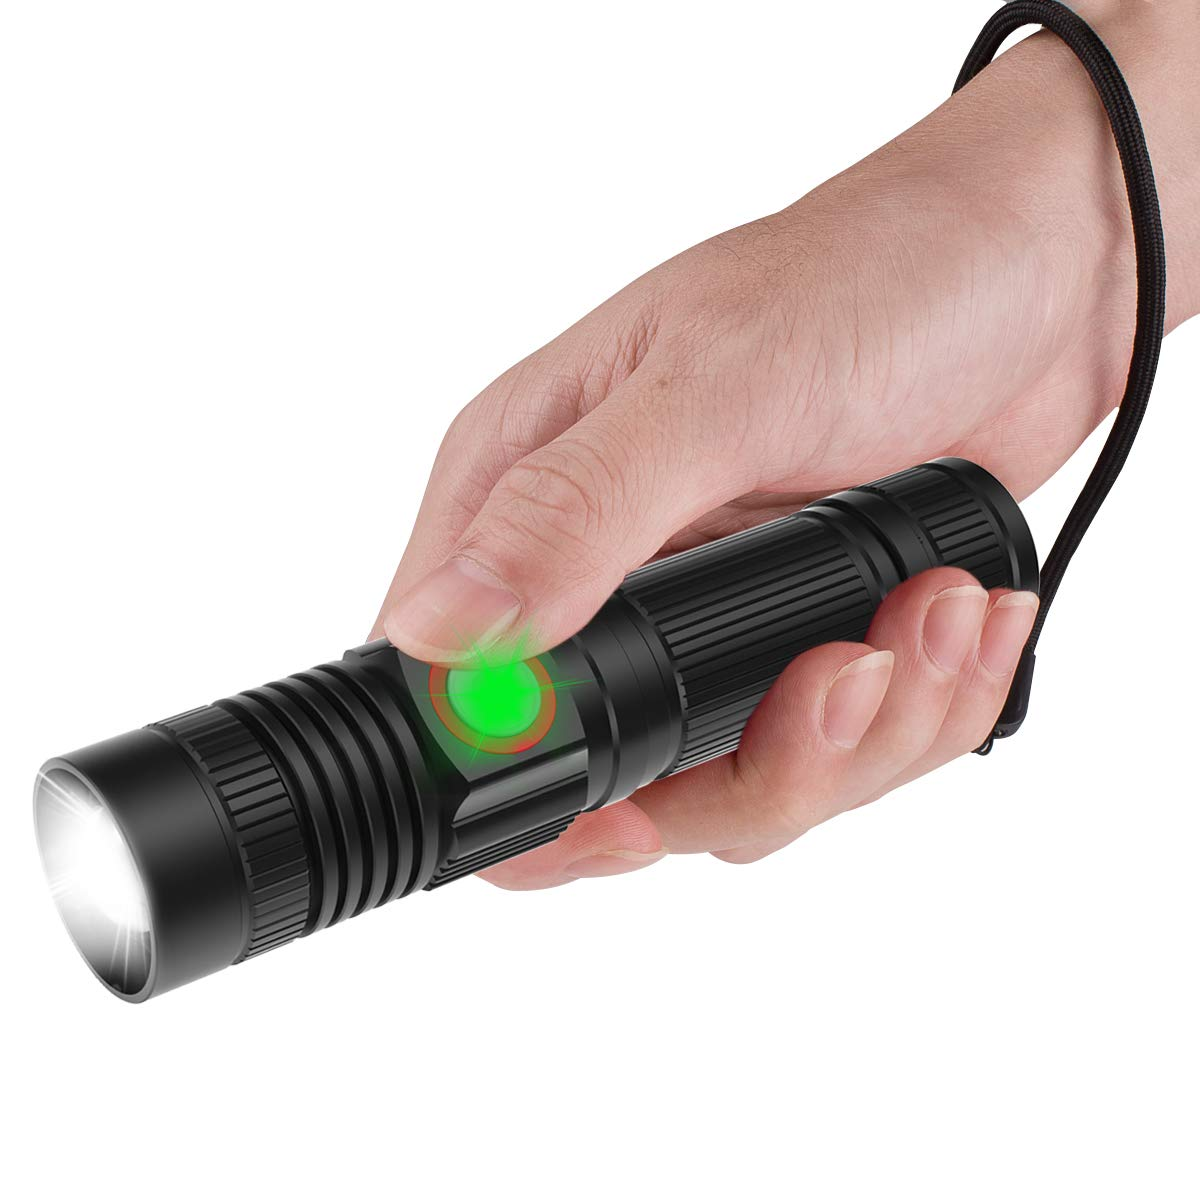 This Led Handheld Flashlight is Extremely Bright!